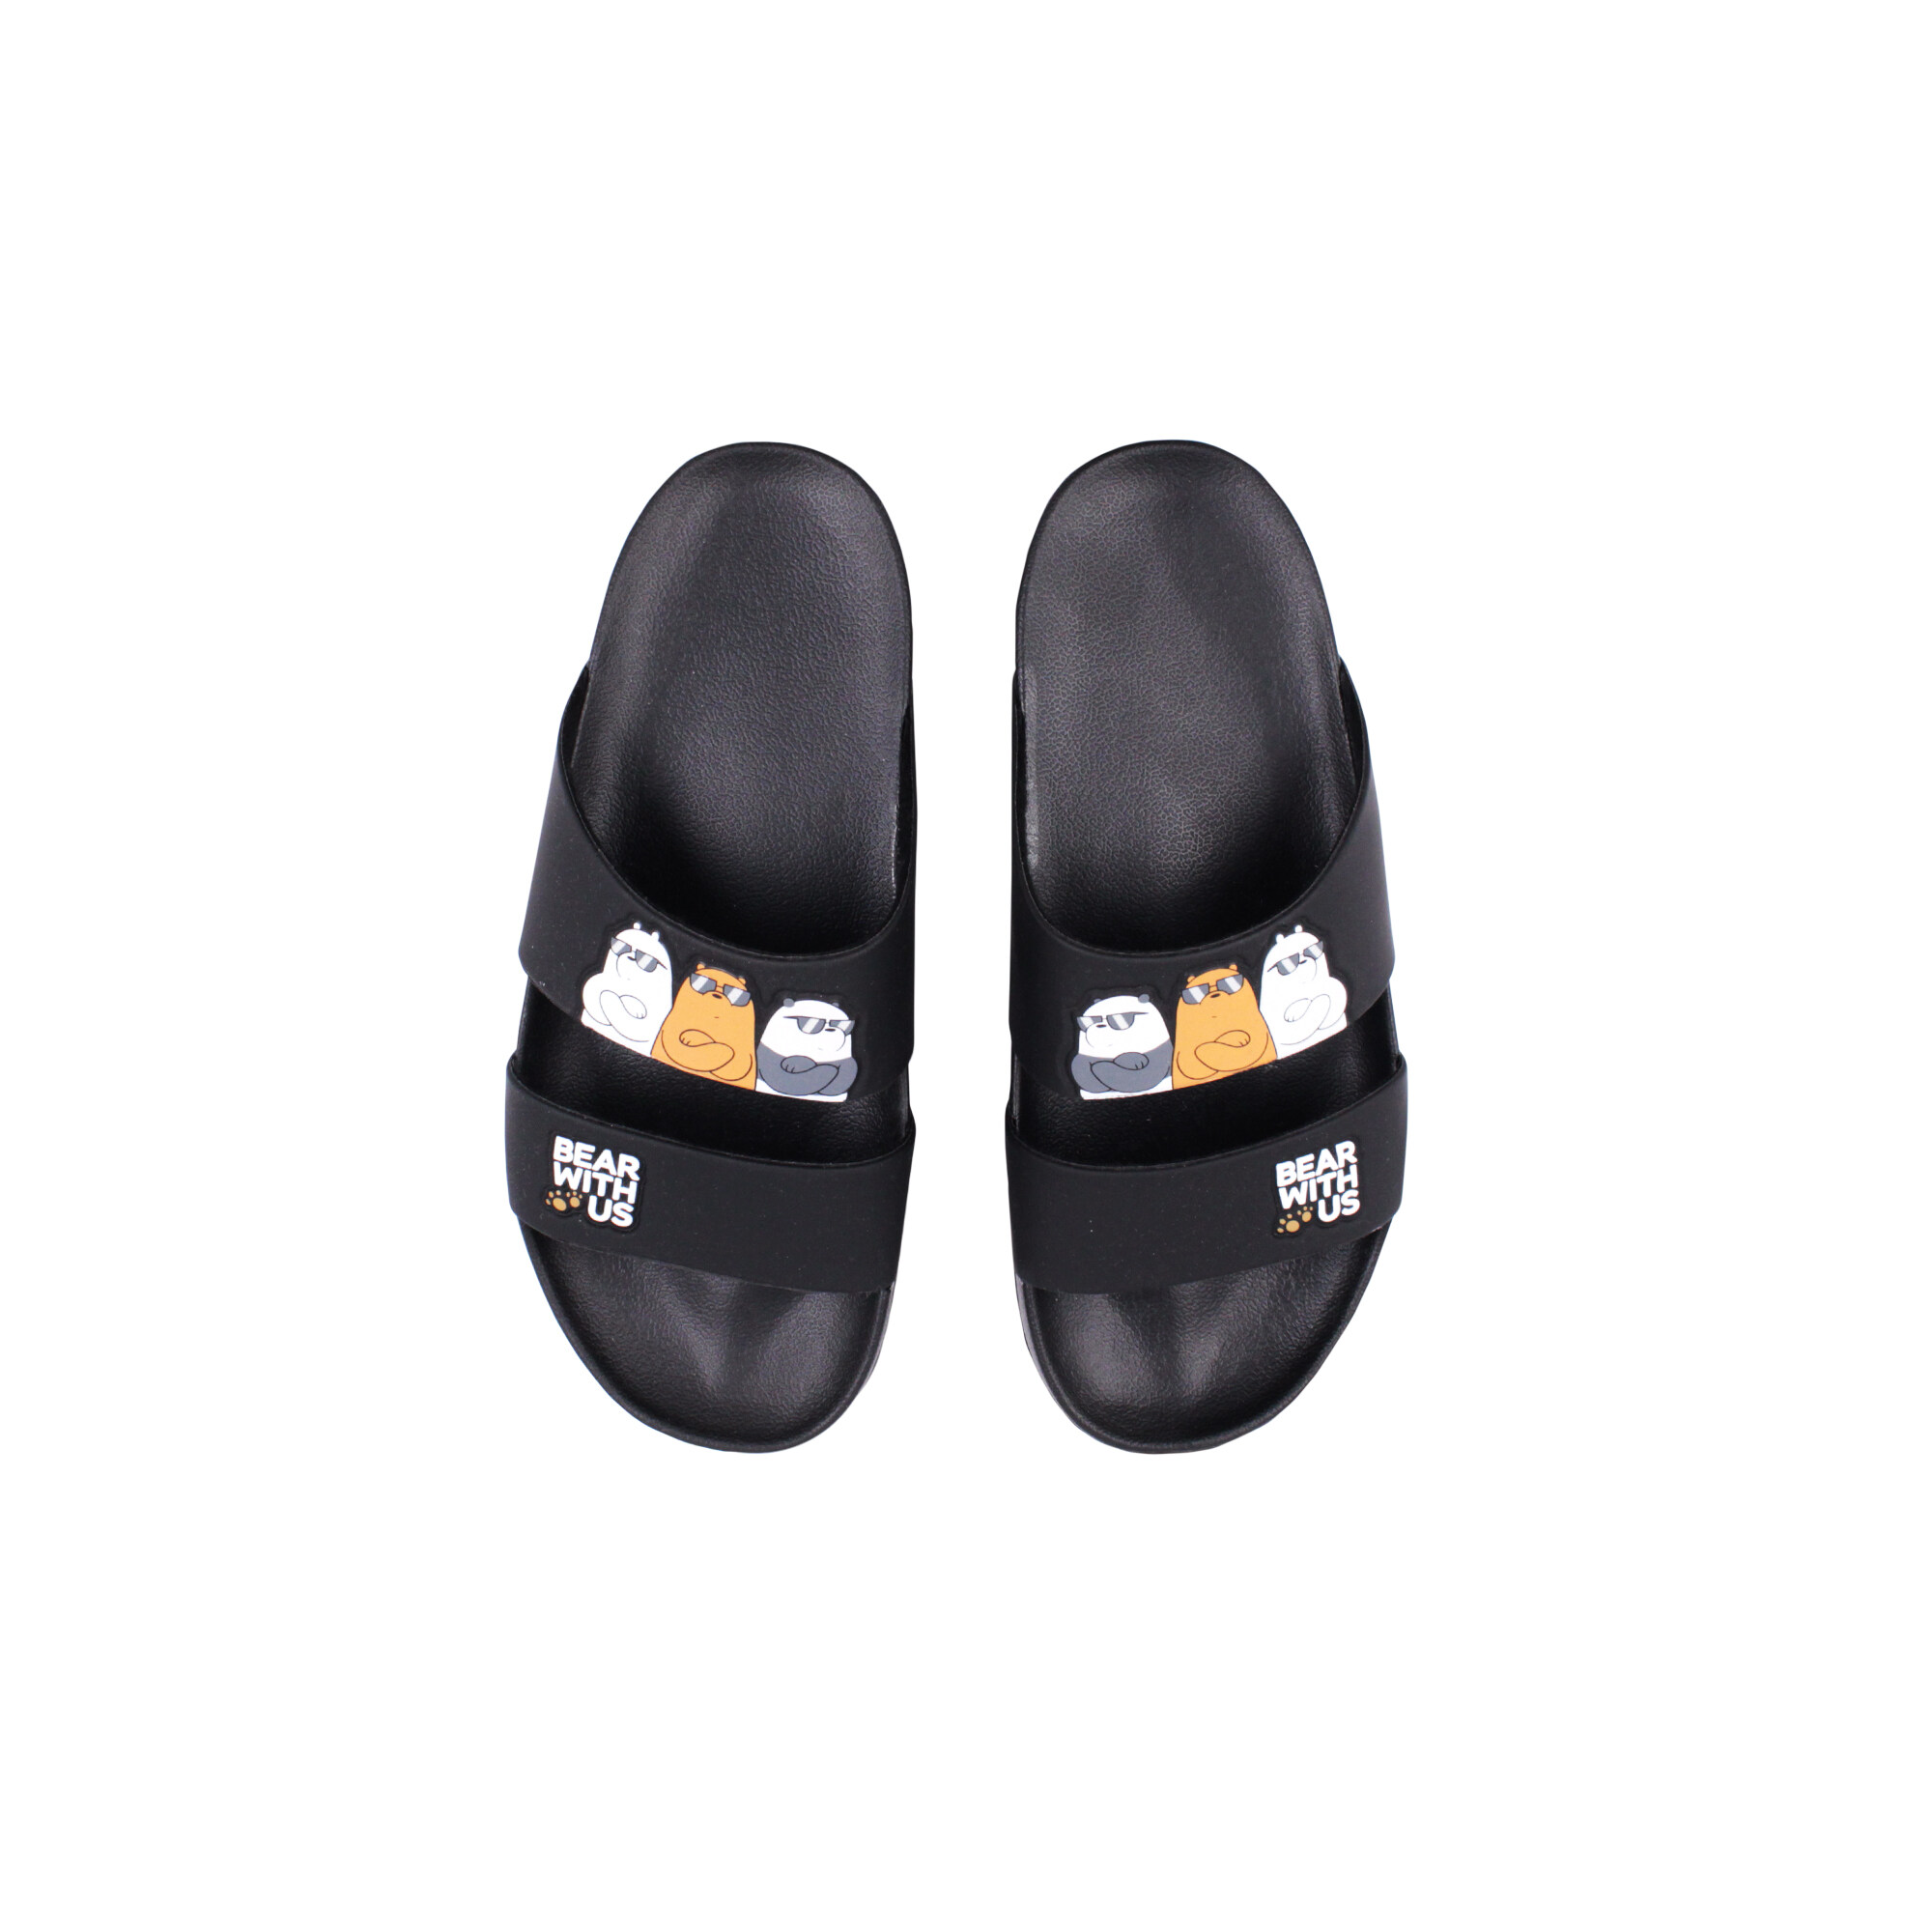 We Bare Bears Adult Unisex Sandals-Black Colour